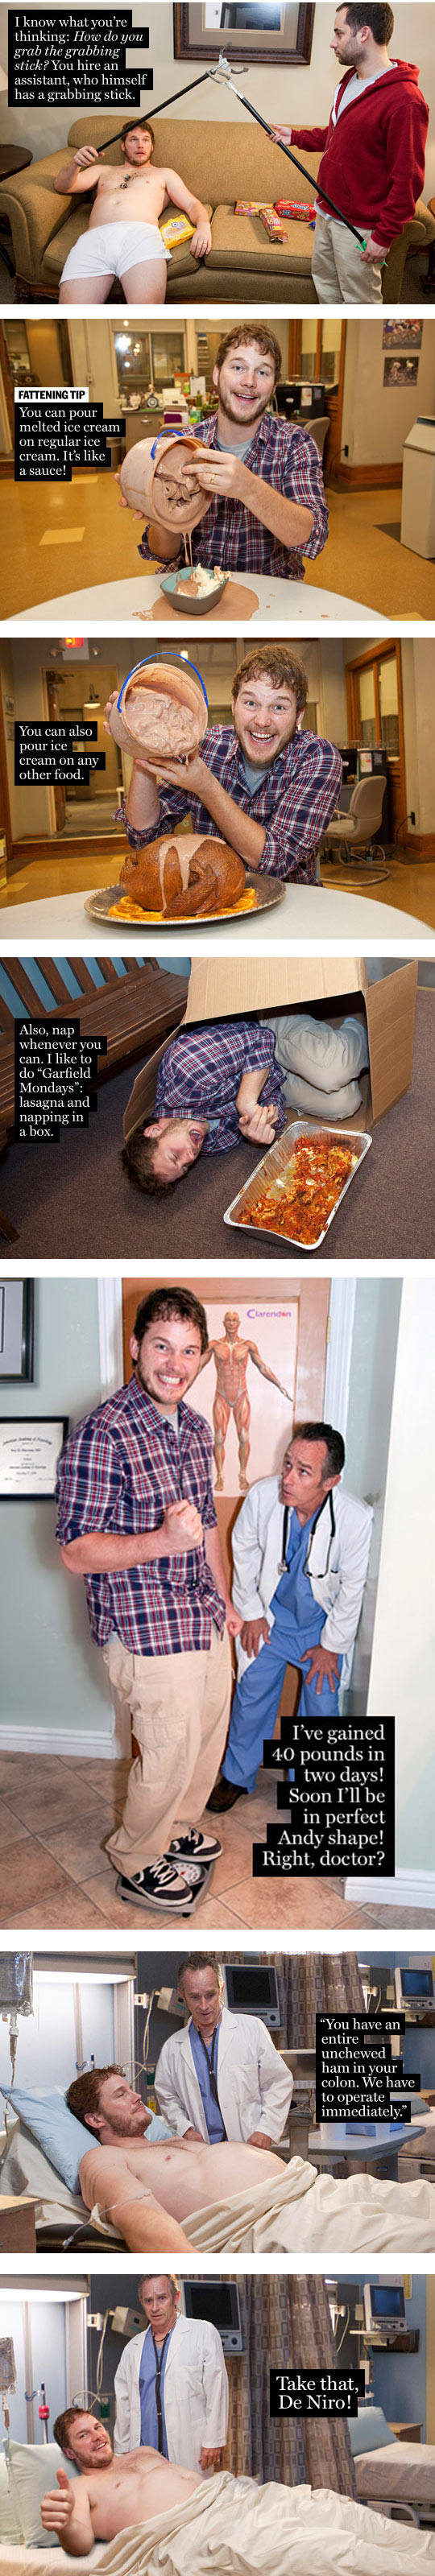 funny-Chris-Pratt-eating-fries-candy-doctor